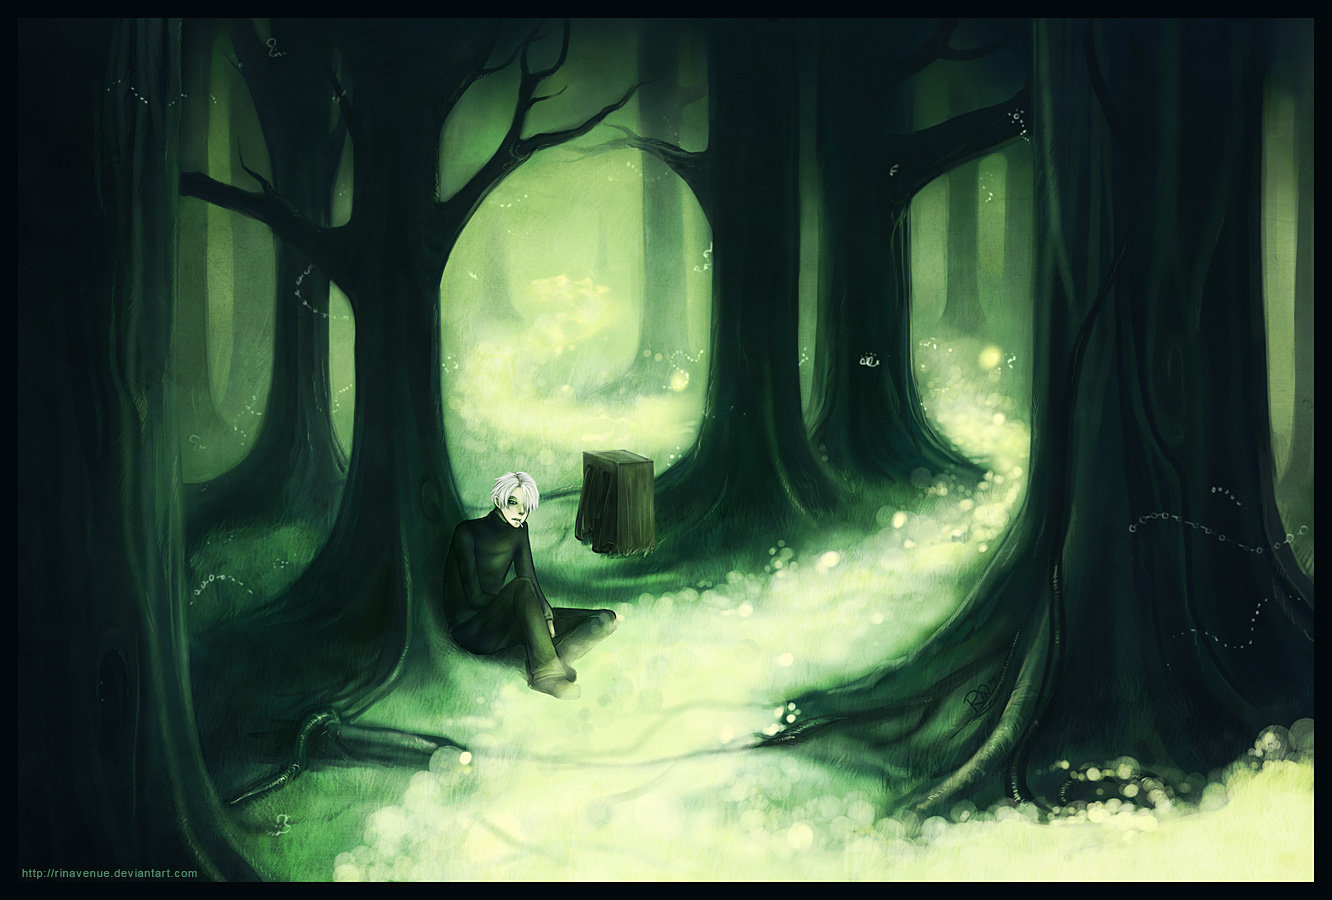 So Mushishi is one of my favorite animes of all time and I was 1332x900